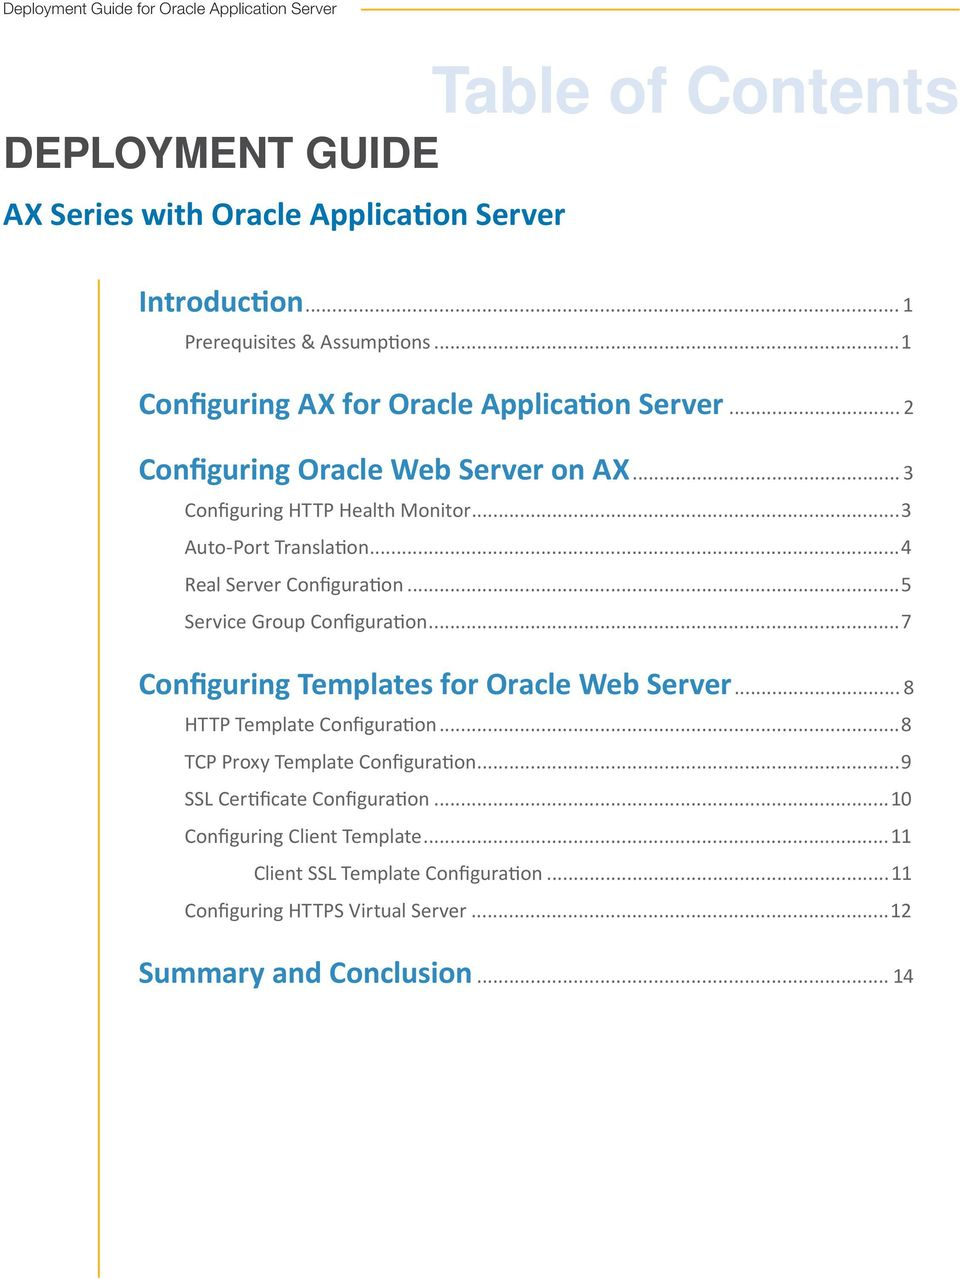 ..4 Real Server Configuration...5 Service Group Configuration...7 Configuring Templates for Oracle Web Server... 8 HTTP Template Configuration.